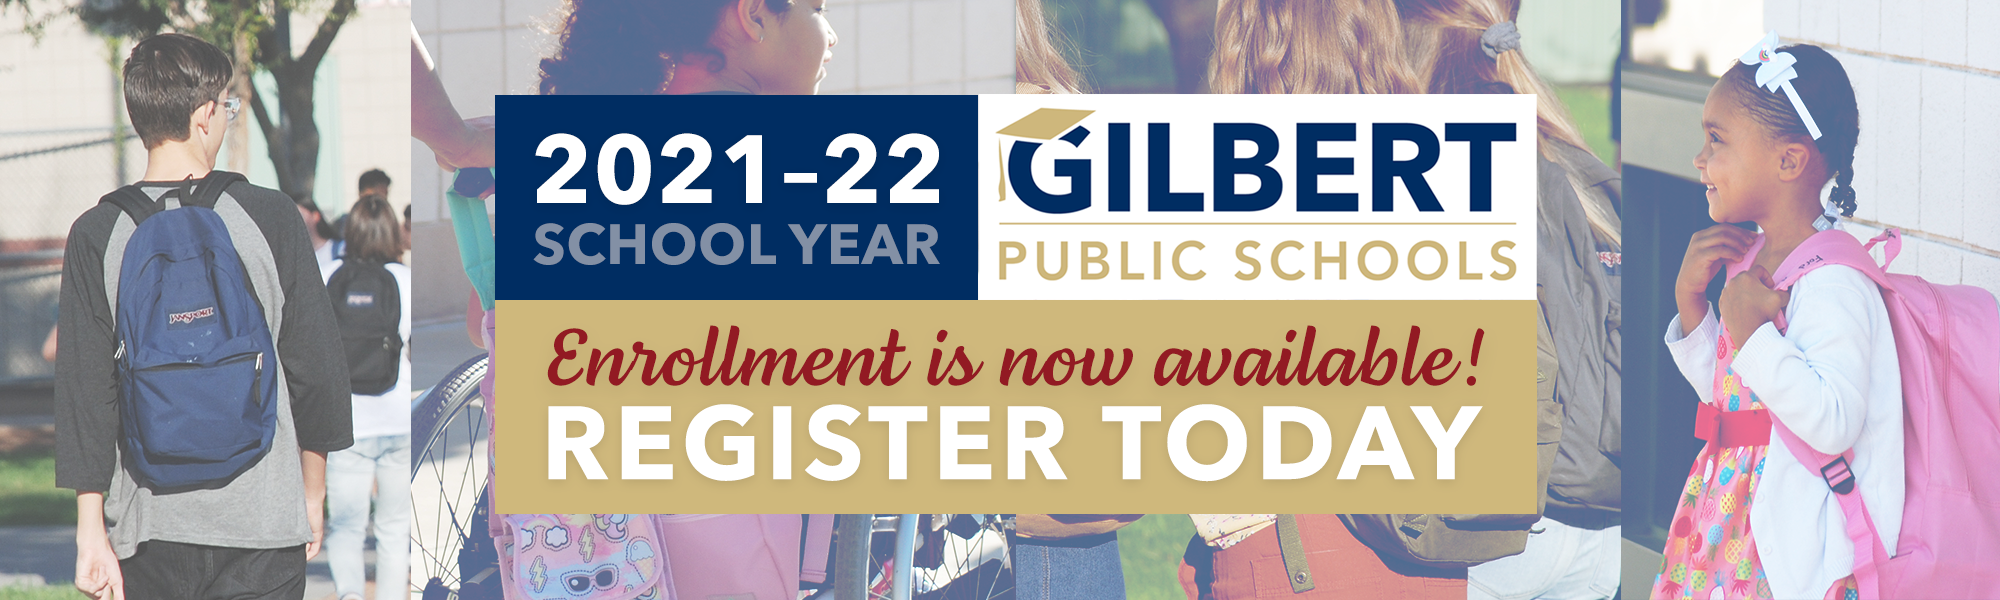 Gilbert Public Schools Enrollment Registration Open for 2021–2022 School Year